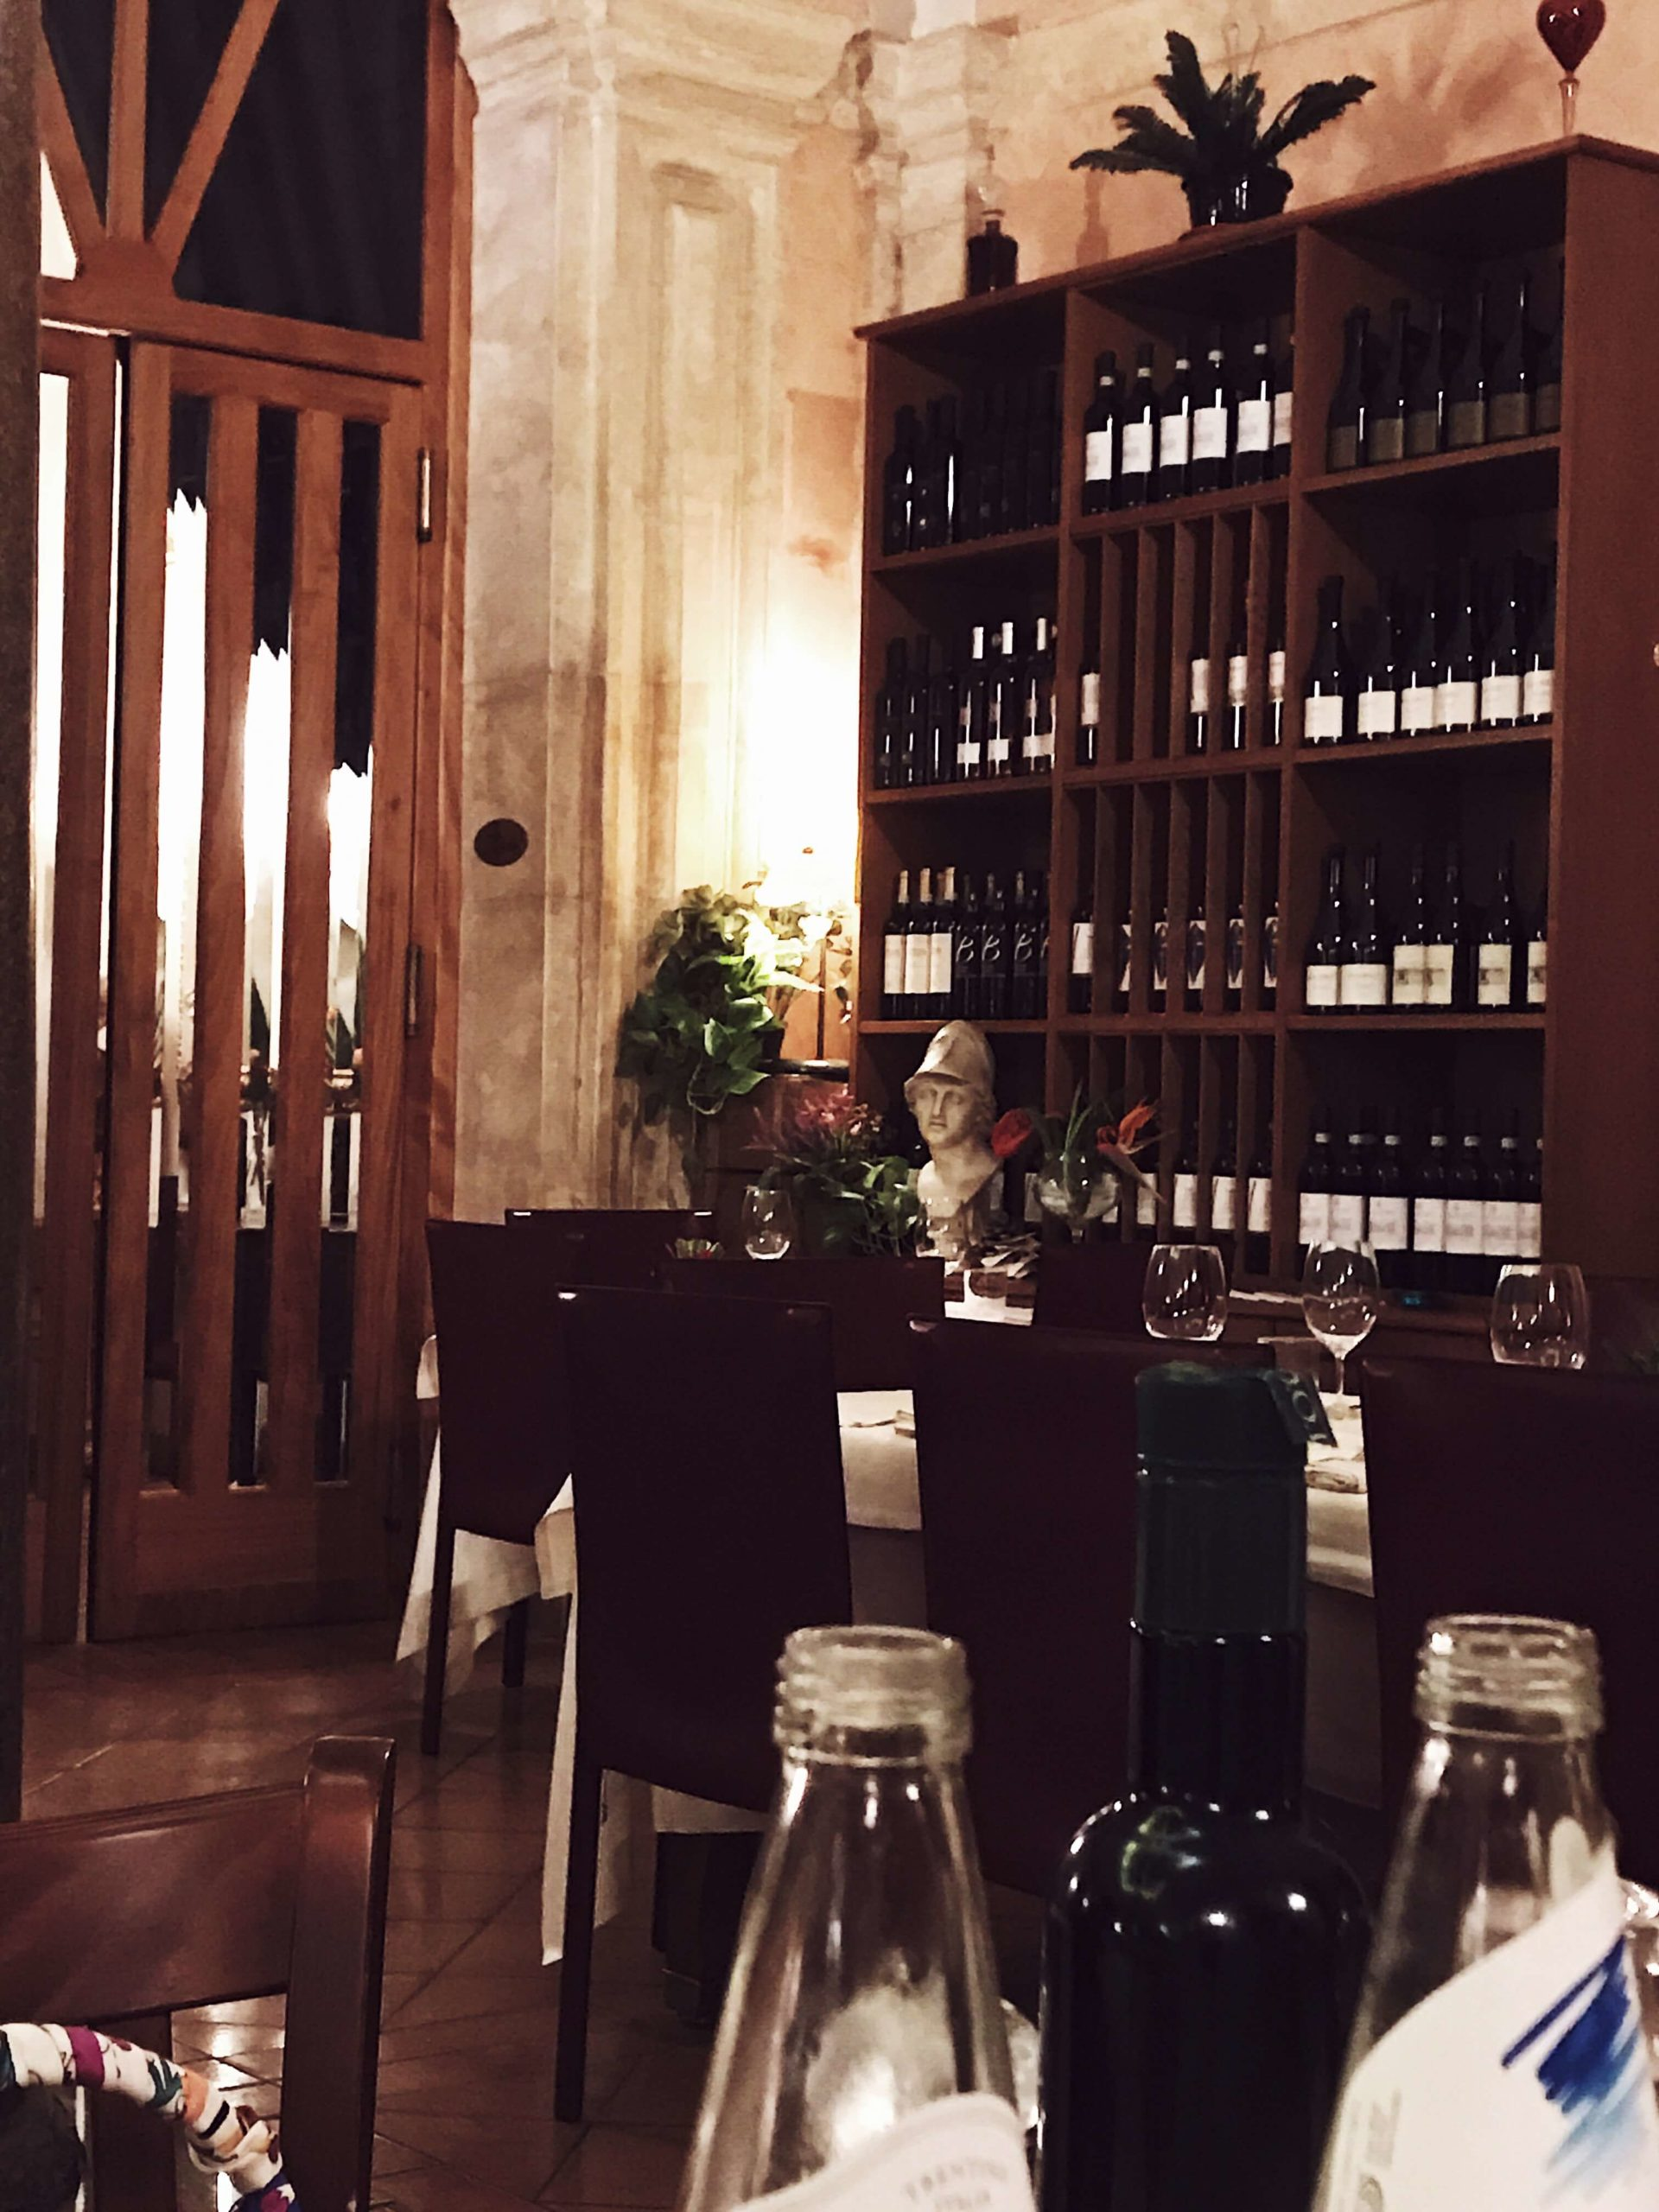 Rome in pictures: a restaurant in rome